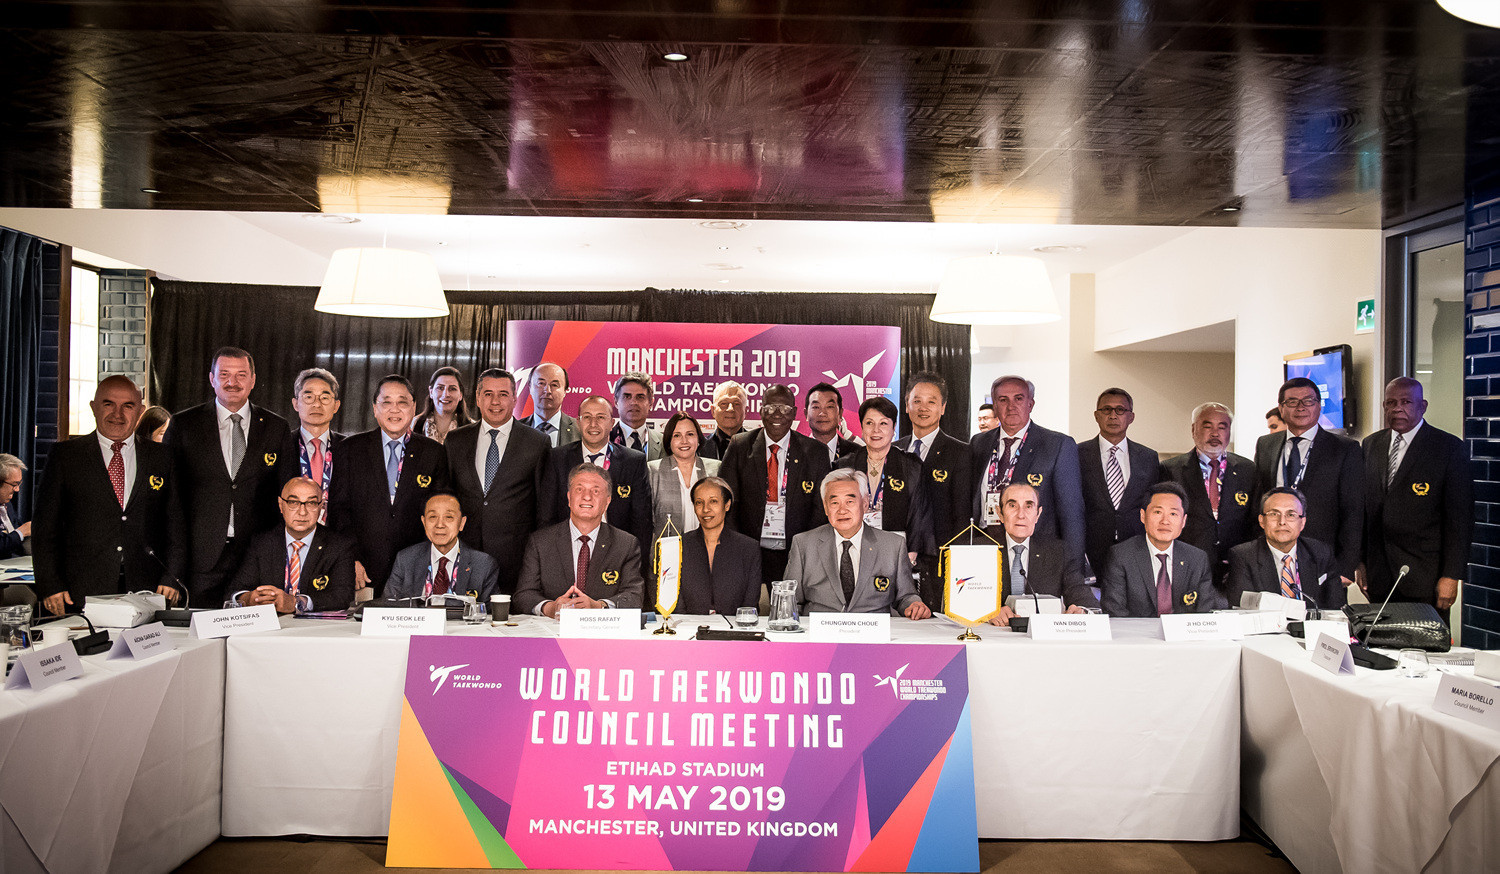 The World Taekwondo Council meeting was held in Manchester in the build-up to the 2019 World Championships ©World Taekwondo